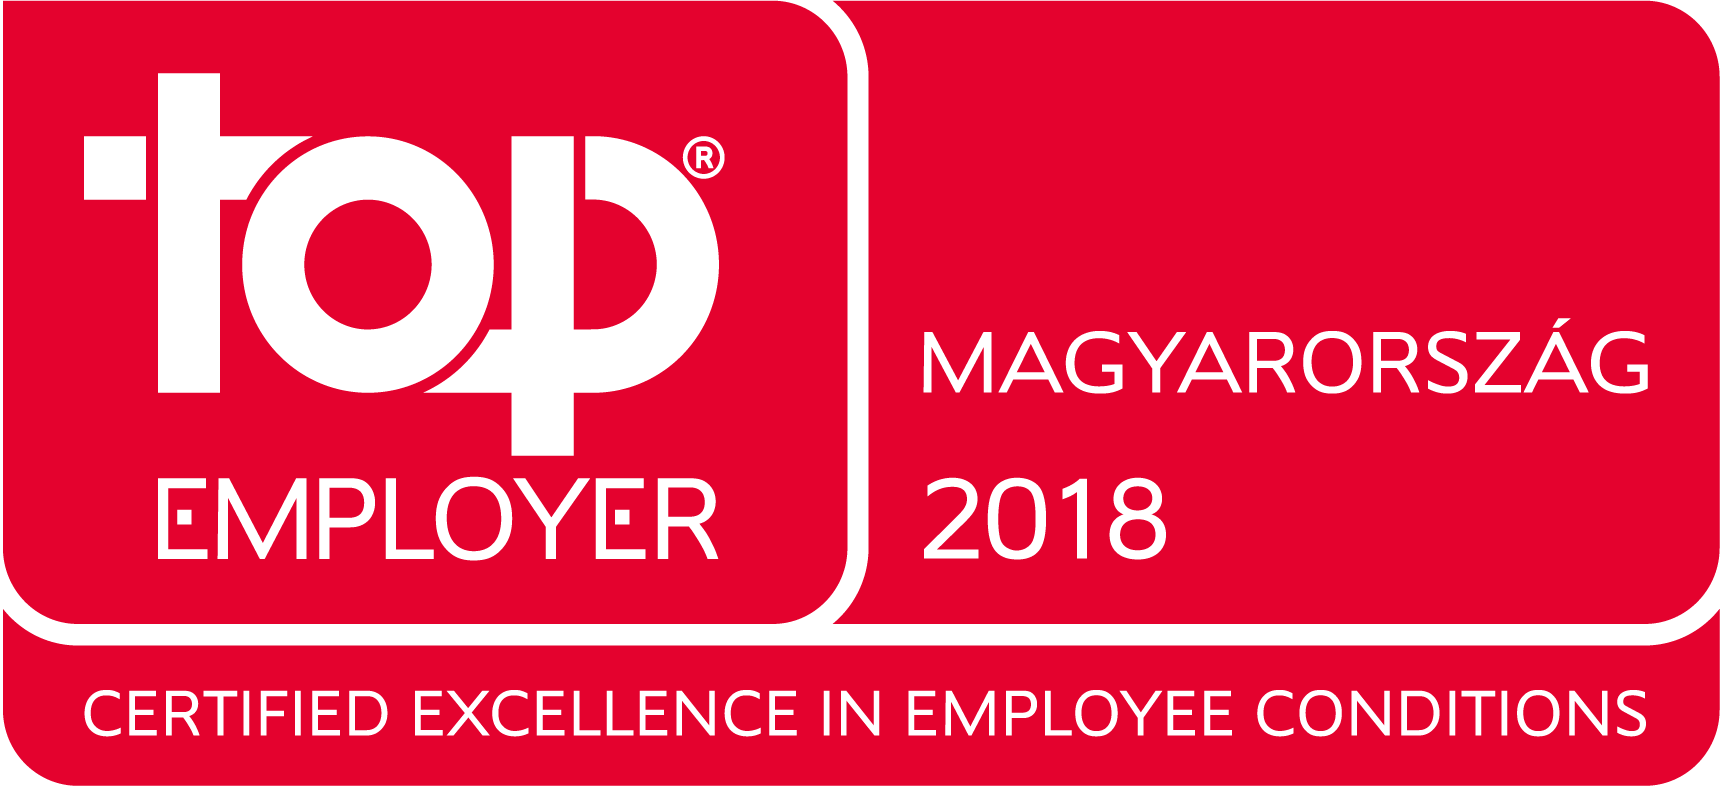 Top_Employer_Hungary_2018 újságra (1)